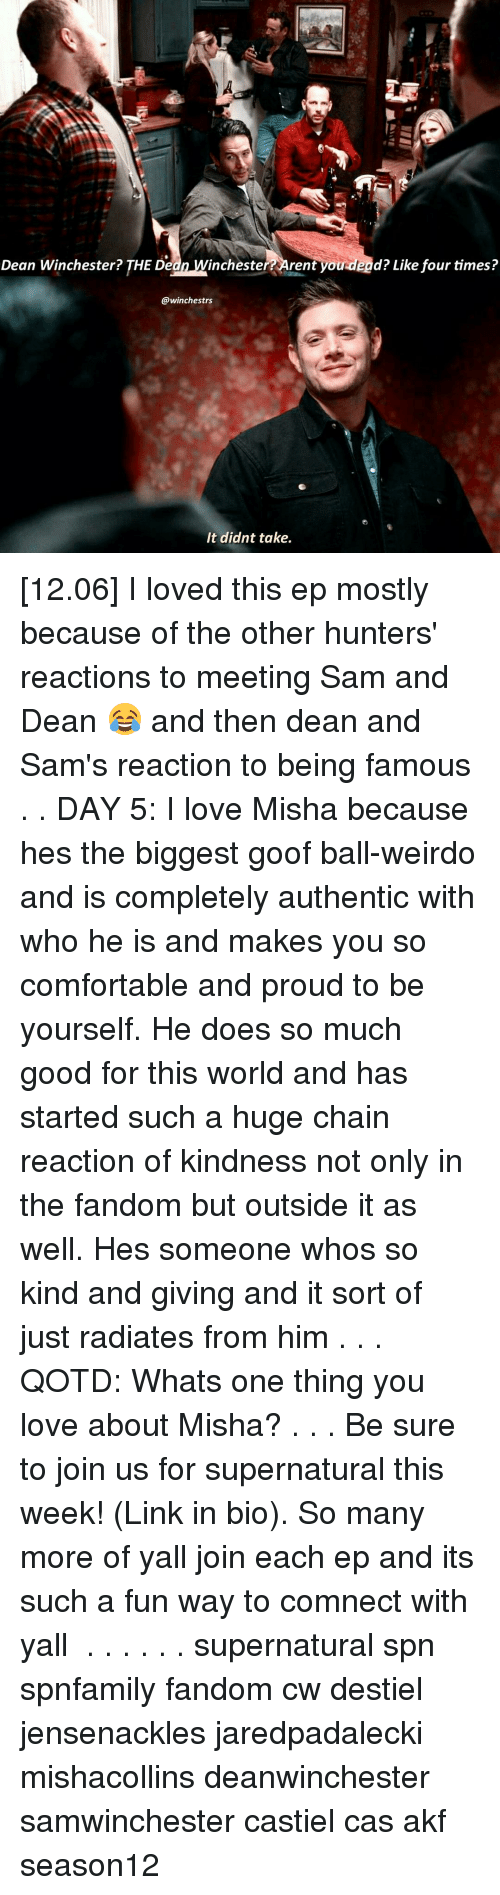 Memes, 🤖, and Rent: Dean Winchester? THE Dedn inchester rent you dead? Like four times?  @winchestrs  It didnt take. [12.06] I loved this ep mostly because of the other hunters' reactions to meeting Sam and Dean 😂 and then dean and Sam's reaction to being famous . . DAY 5: I love Misha because hes the biggest goof ball-weirdo and is completely authentic with who he is and makes you so comfortable and proud to be yourself. He does so much good for this world and has started such a huge chain reaction of kindness not only in the fandom but outside it as well. Hes someone whos so kind and giving and it sort of just radiates from him . . . QOTD: Whats one thing you love about Misha? . . . Be sure to join us for supernatural this week! (Link in bio). So many more of yall join each ep and its such a fun way to comnect with yall ♡ . . . . . . supernatural spn spnfamily fandom cw destiel jensenackles jaredpadalecki mishacollins deanwinchester samwinchester castiel cas akf season12